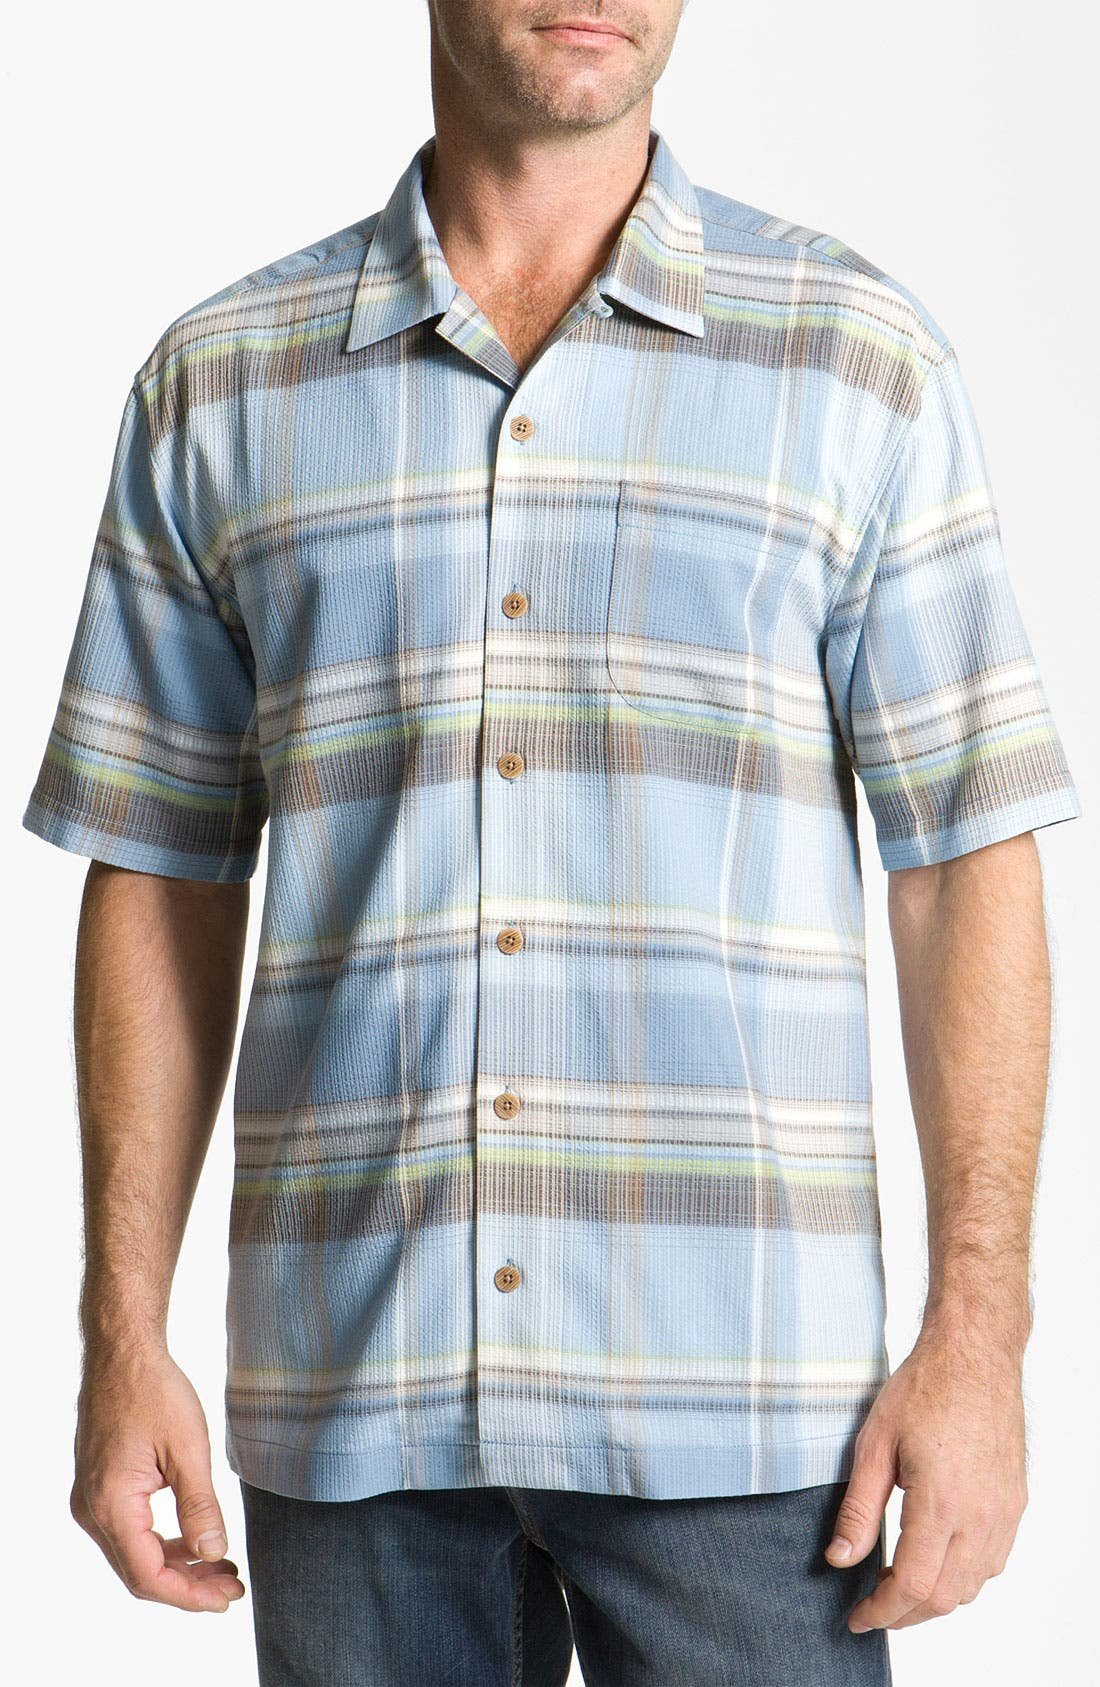 Alternate Image 1 Selected - Tommy Bahama 'Big Bad Plaid' Silk Campshirt